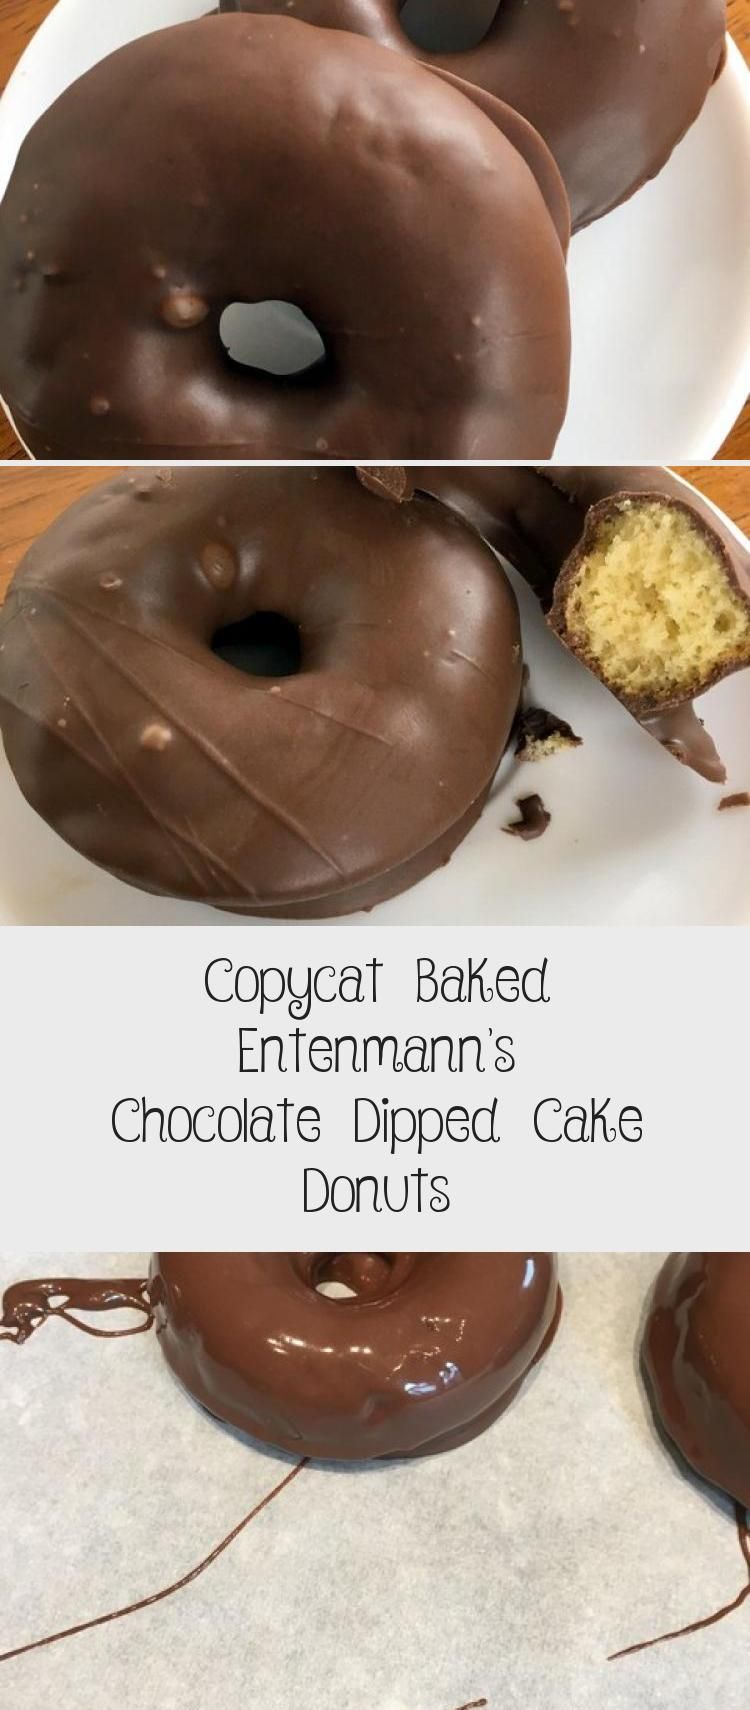 Copycat baked entenmanns chocolate dipped cake donuts